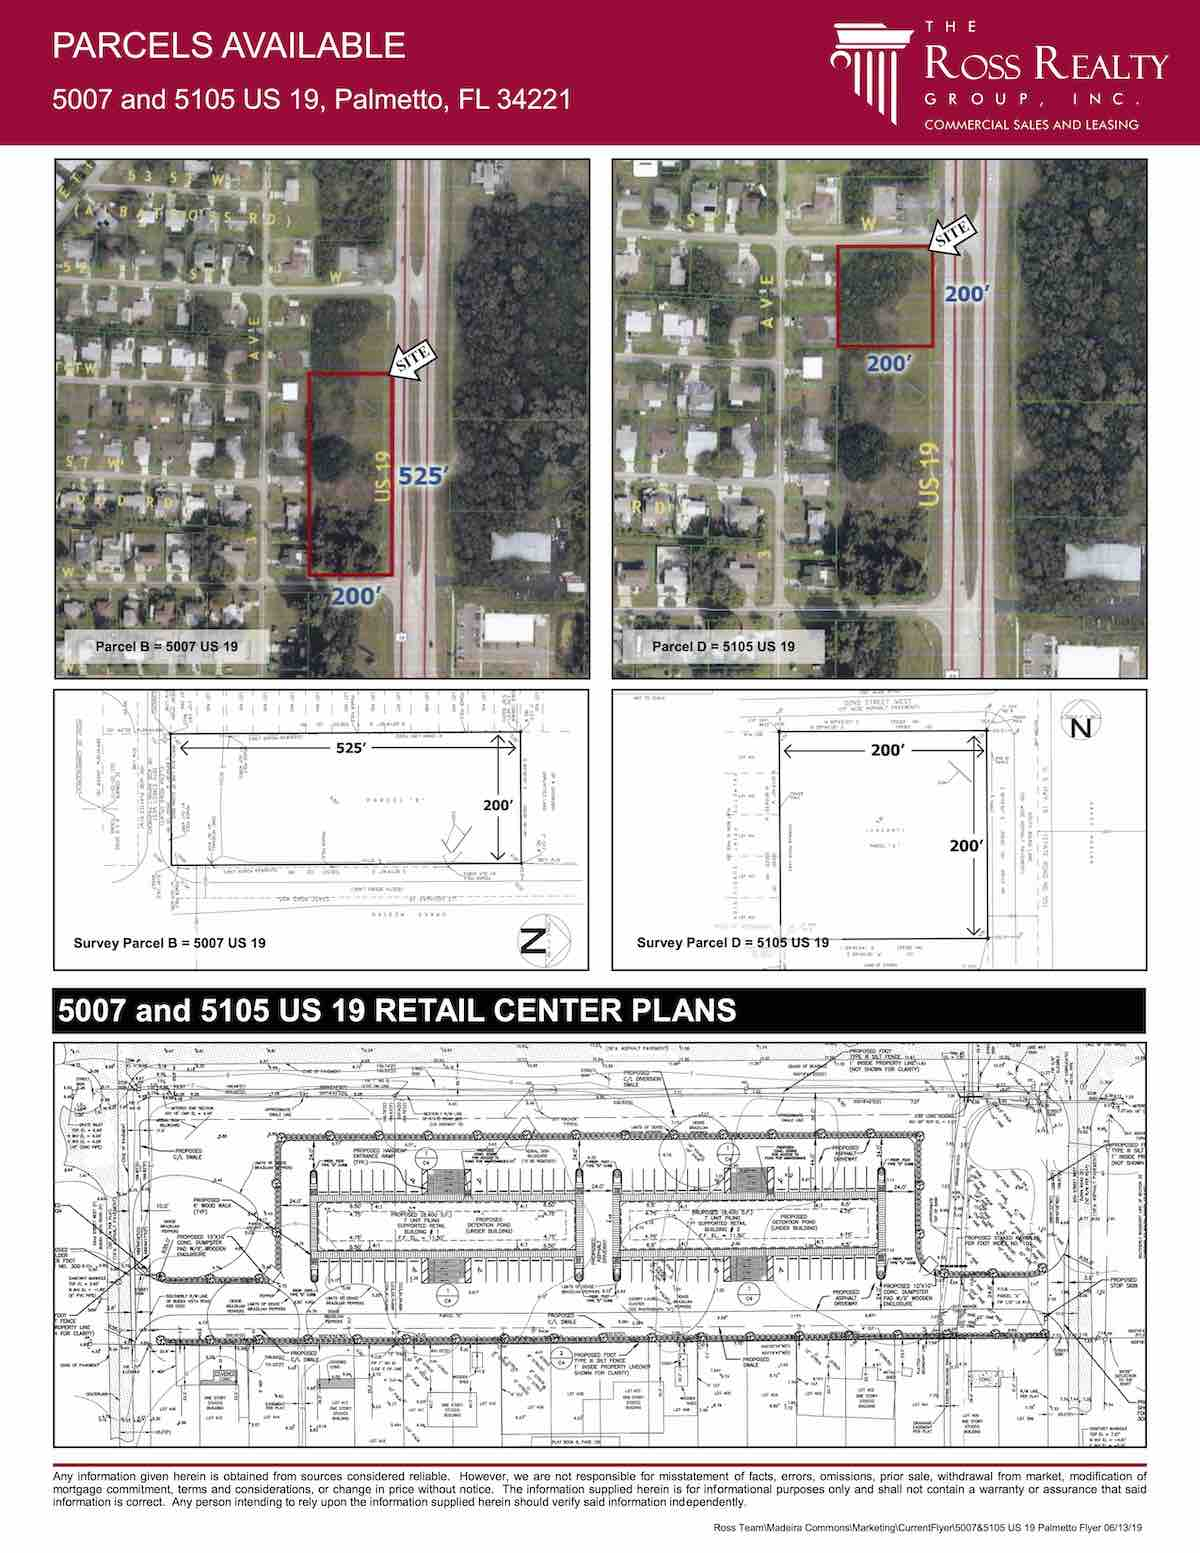 FOR SALE - Retail Center Site - Parcels Available - 5007 and 5105 US 19, Palmetto, FL 34221 P2